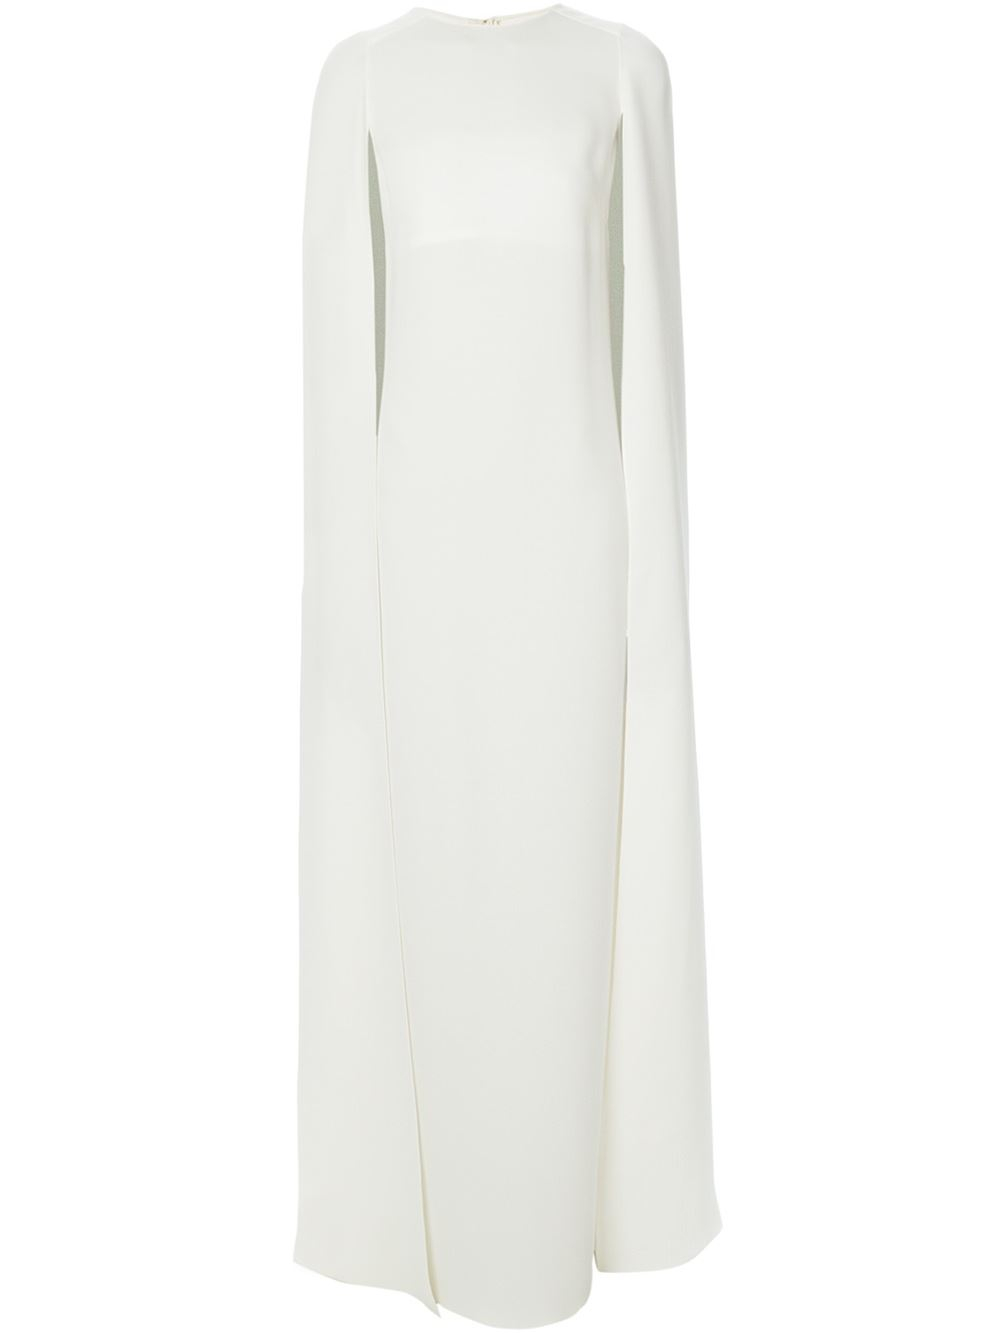 8924d2ec29 Valentino Cape-Style Evening Dress in White - Lyst